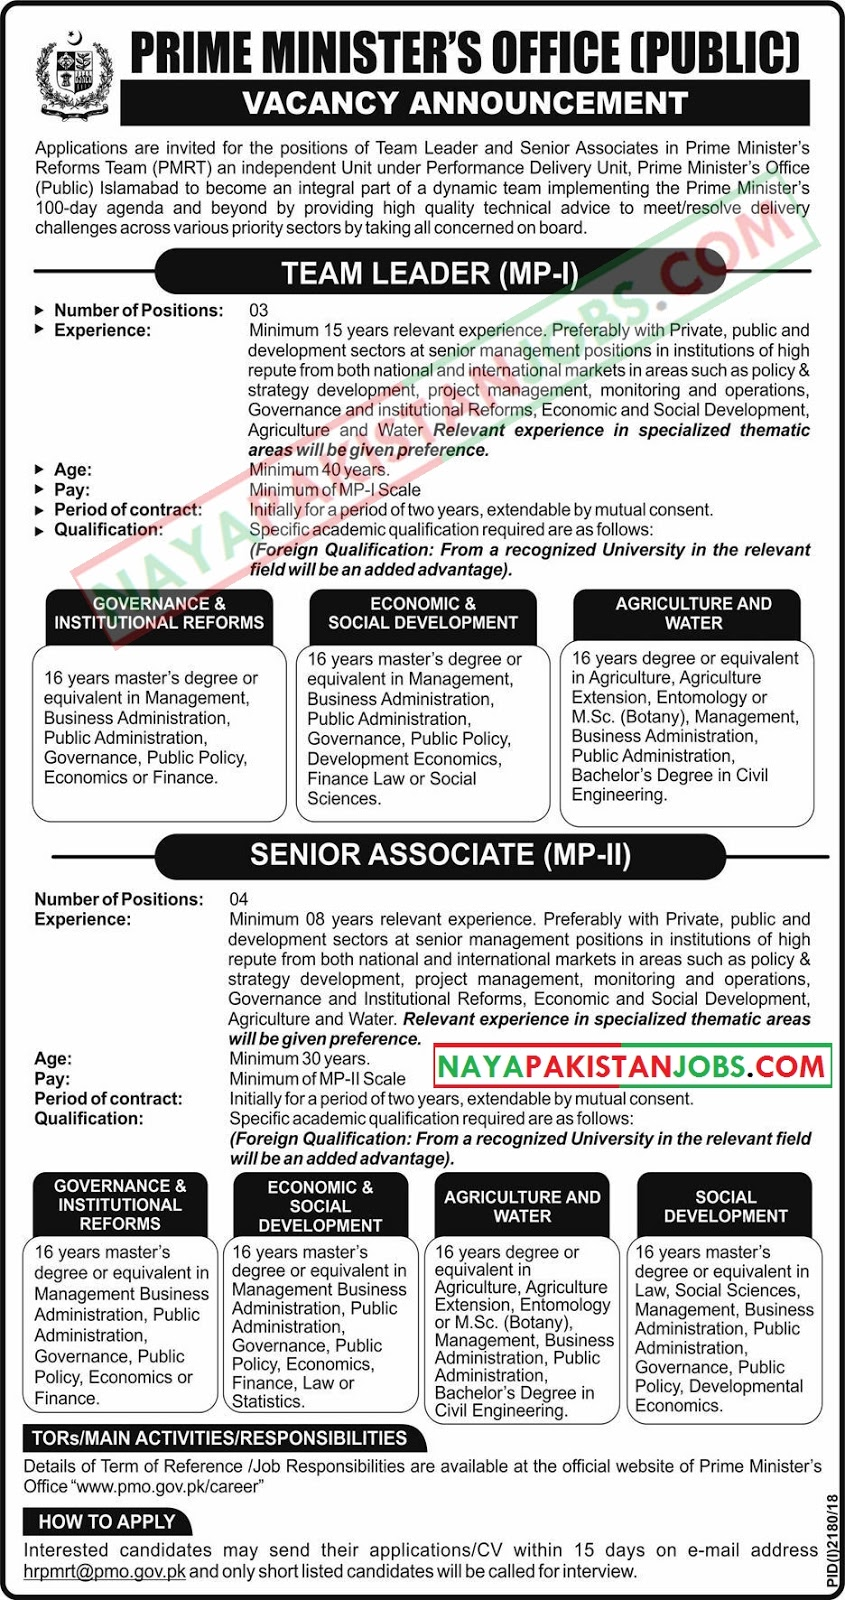 Latest Vacancies Announced in Prime Minister Office Islamabad 16 November 2018 - Naya Pakistan